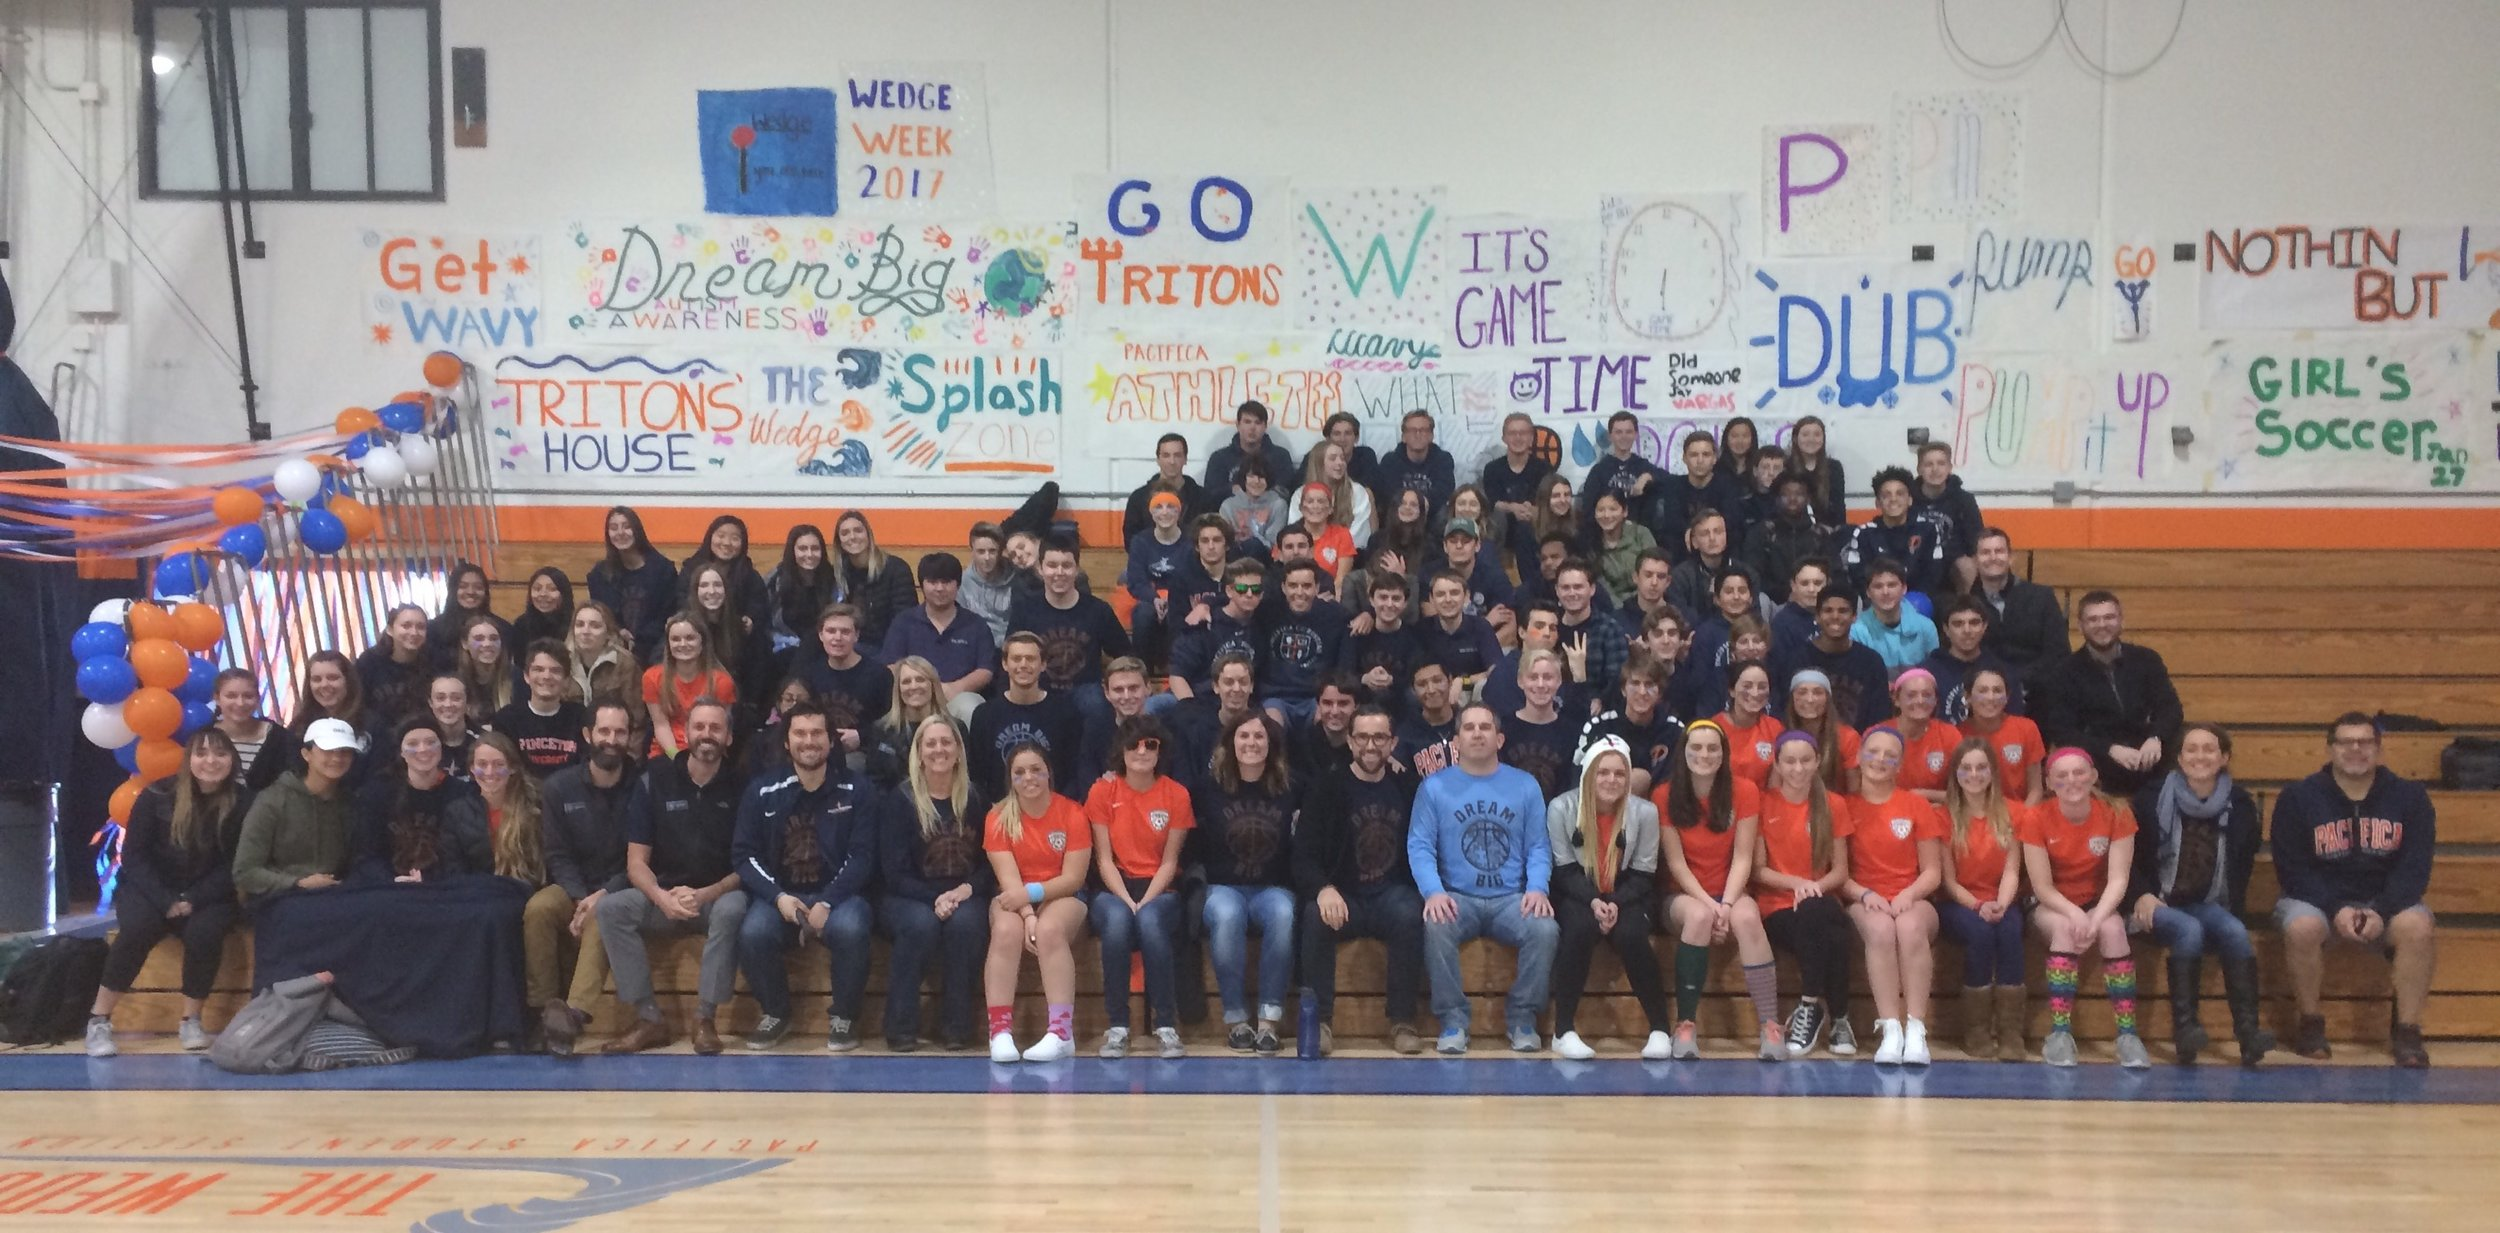 DREAM BIG DAY!!! It was an honor to speak to the students at Pacifica Christian last year during their Wedge Week activities. We are truly grateful for their support and helping us spread awareness!